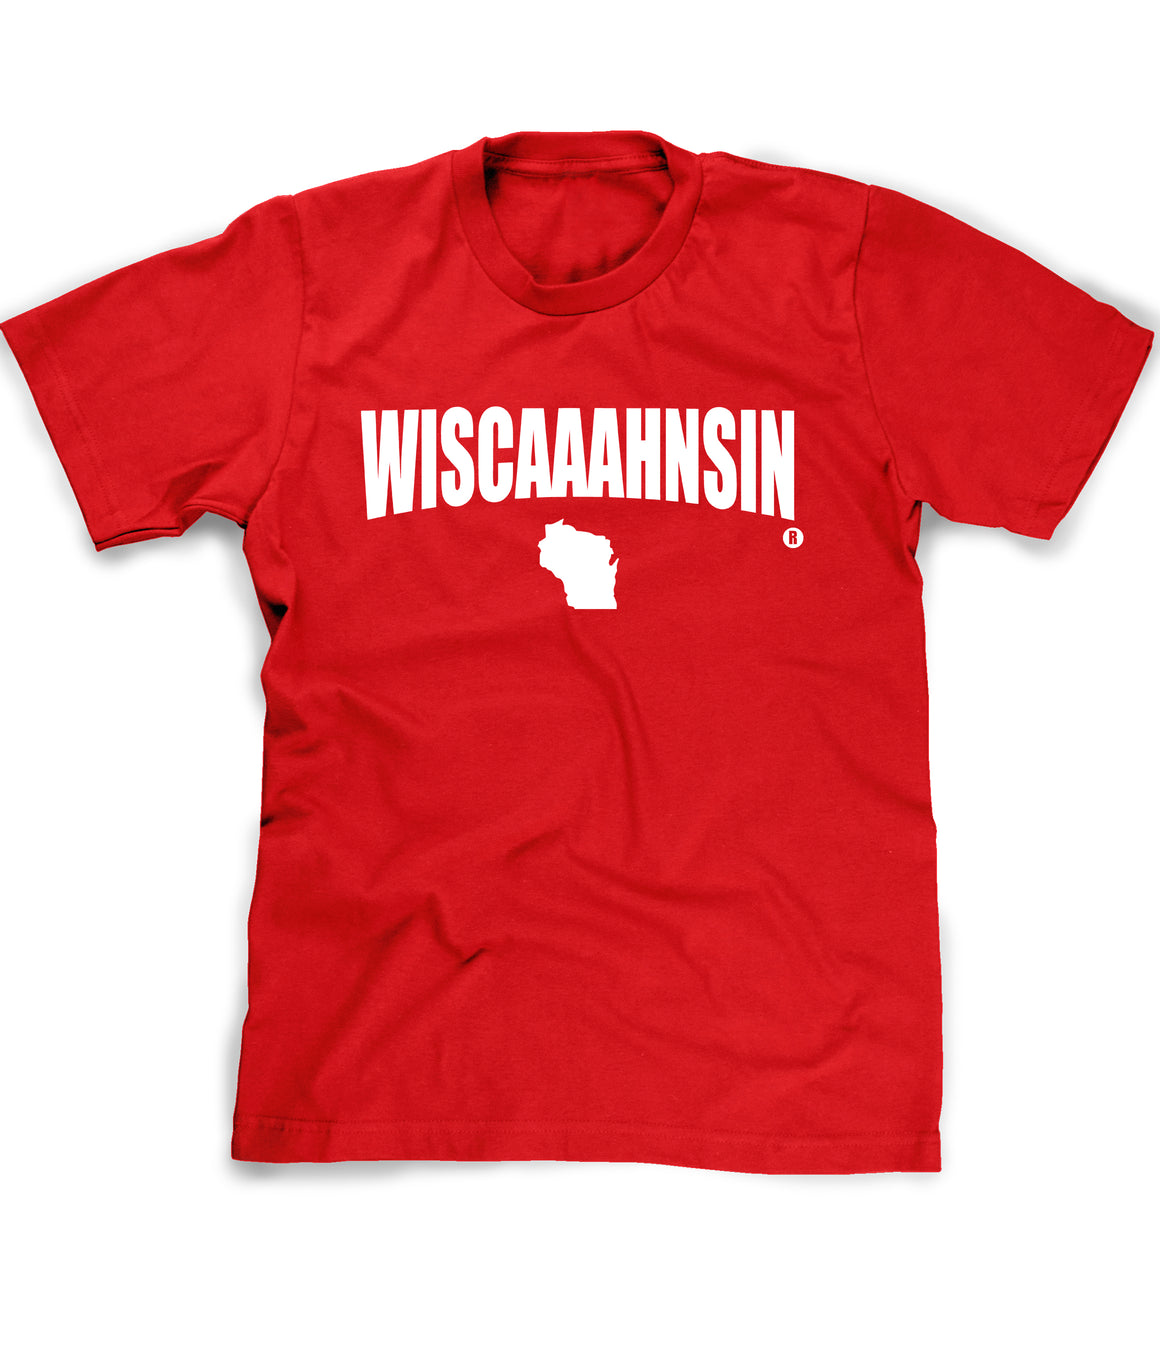 Funny Wisconsin tee shirt on model